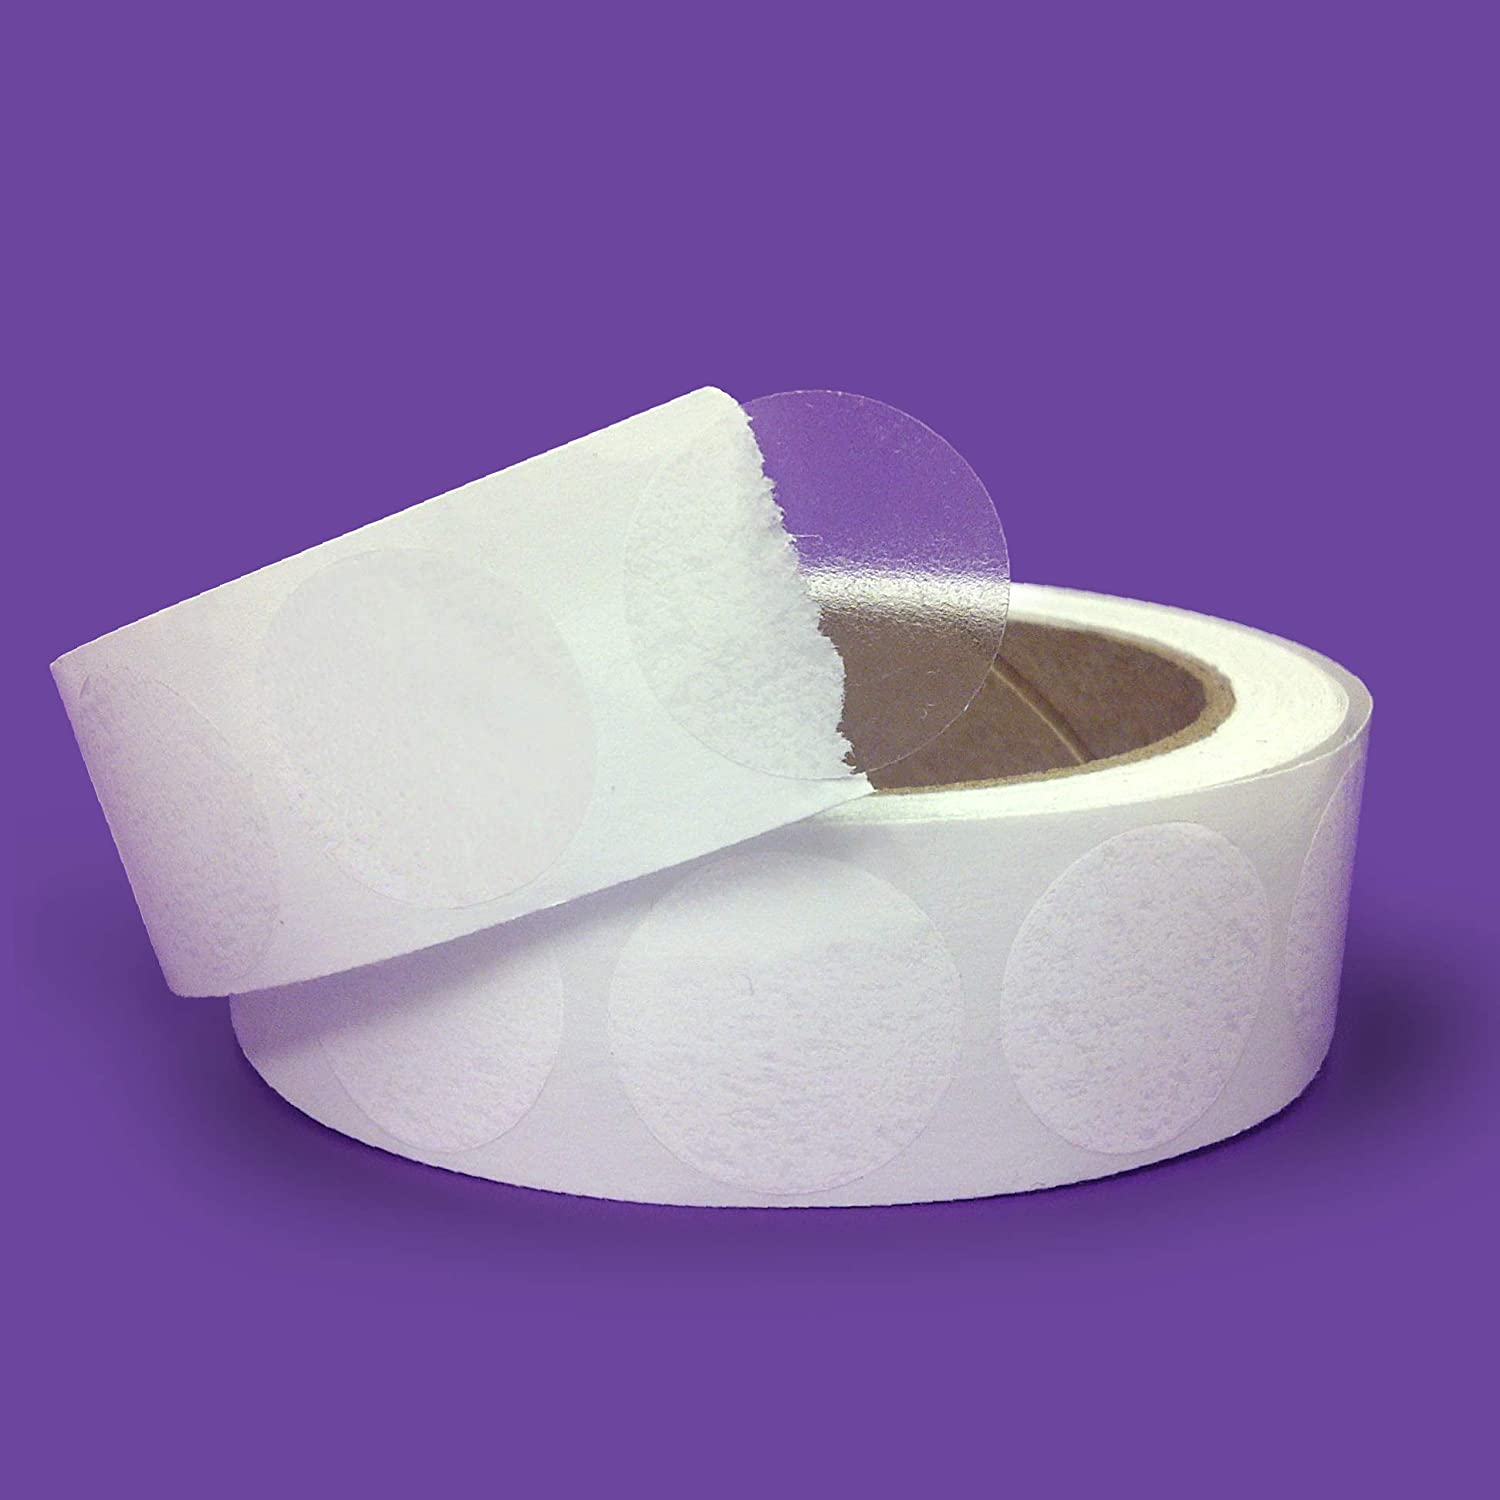 "Super Gloss Clear Retail Package/Envelope Seals 1"" Inch Round Circle Wafer Seal Labels 1,000 Per Roll"